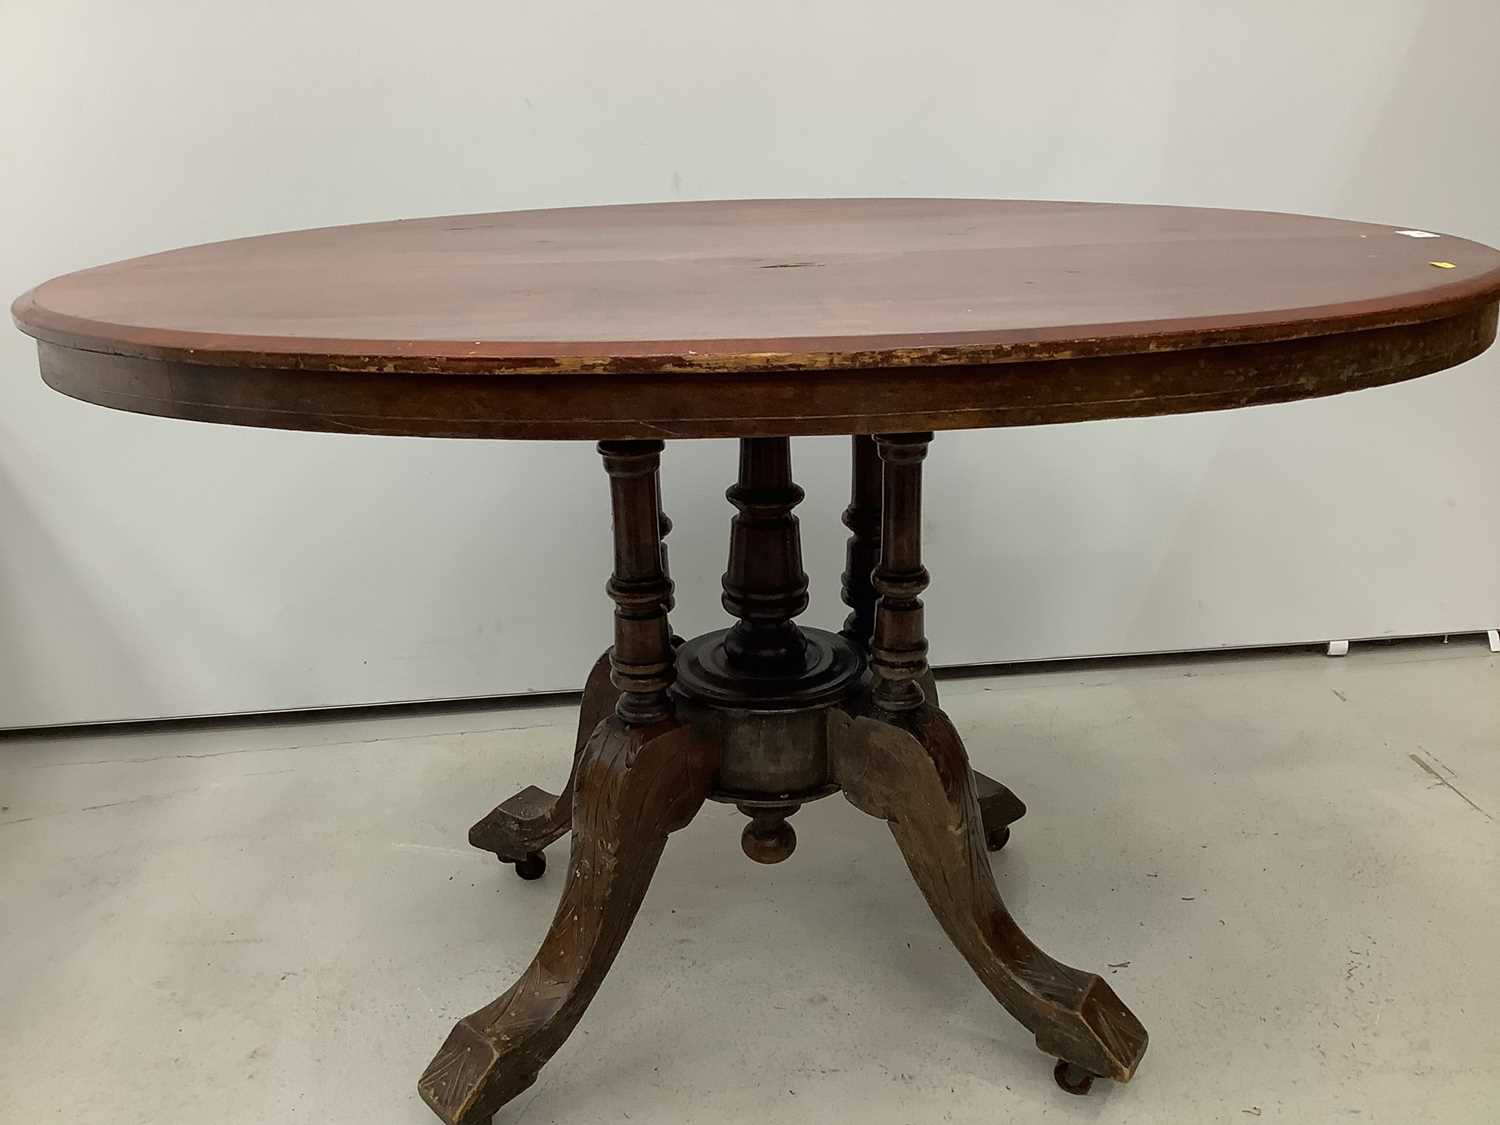 Victorian inlaid oval tilt top loo table 117cm - Image 3 of 5